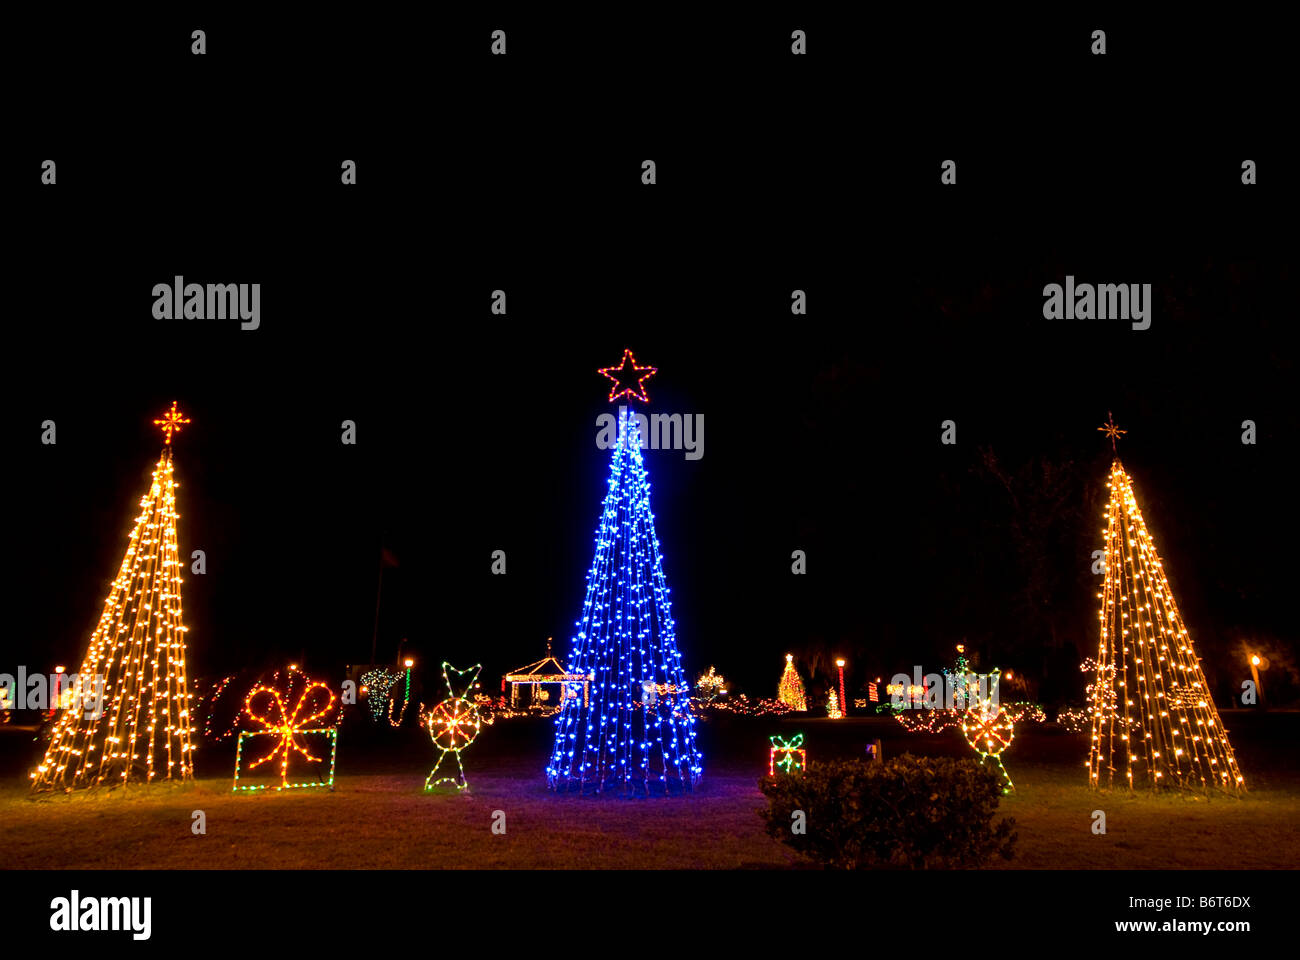 Three Christmas trees bright colors two white lights one blue light christmas tree night dramatic dark background - Stock Image